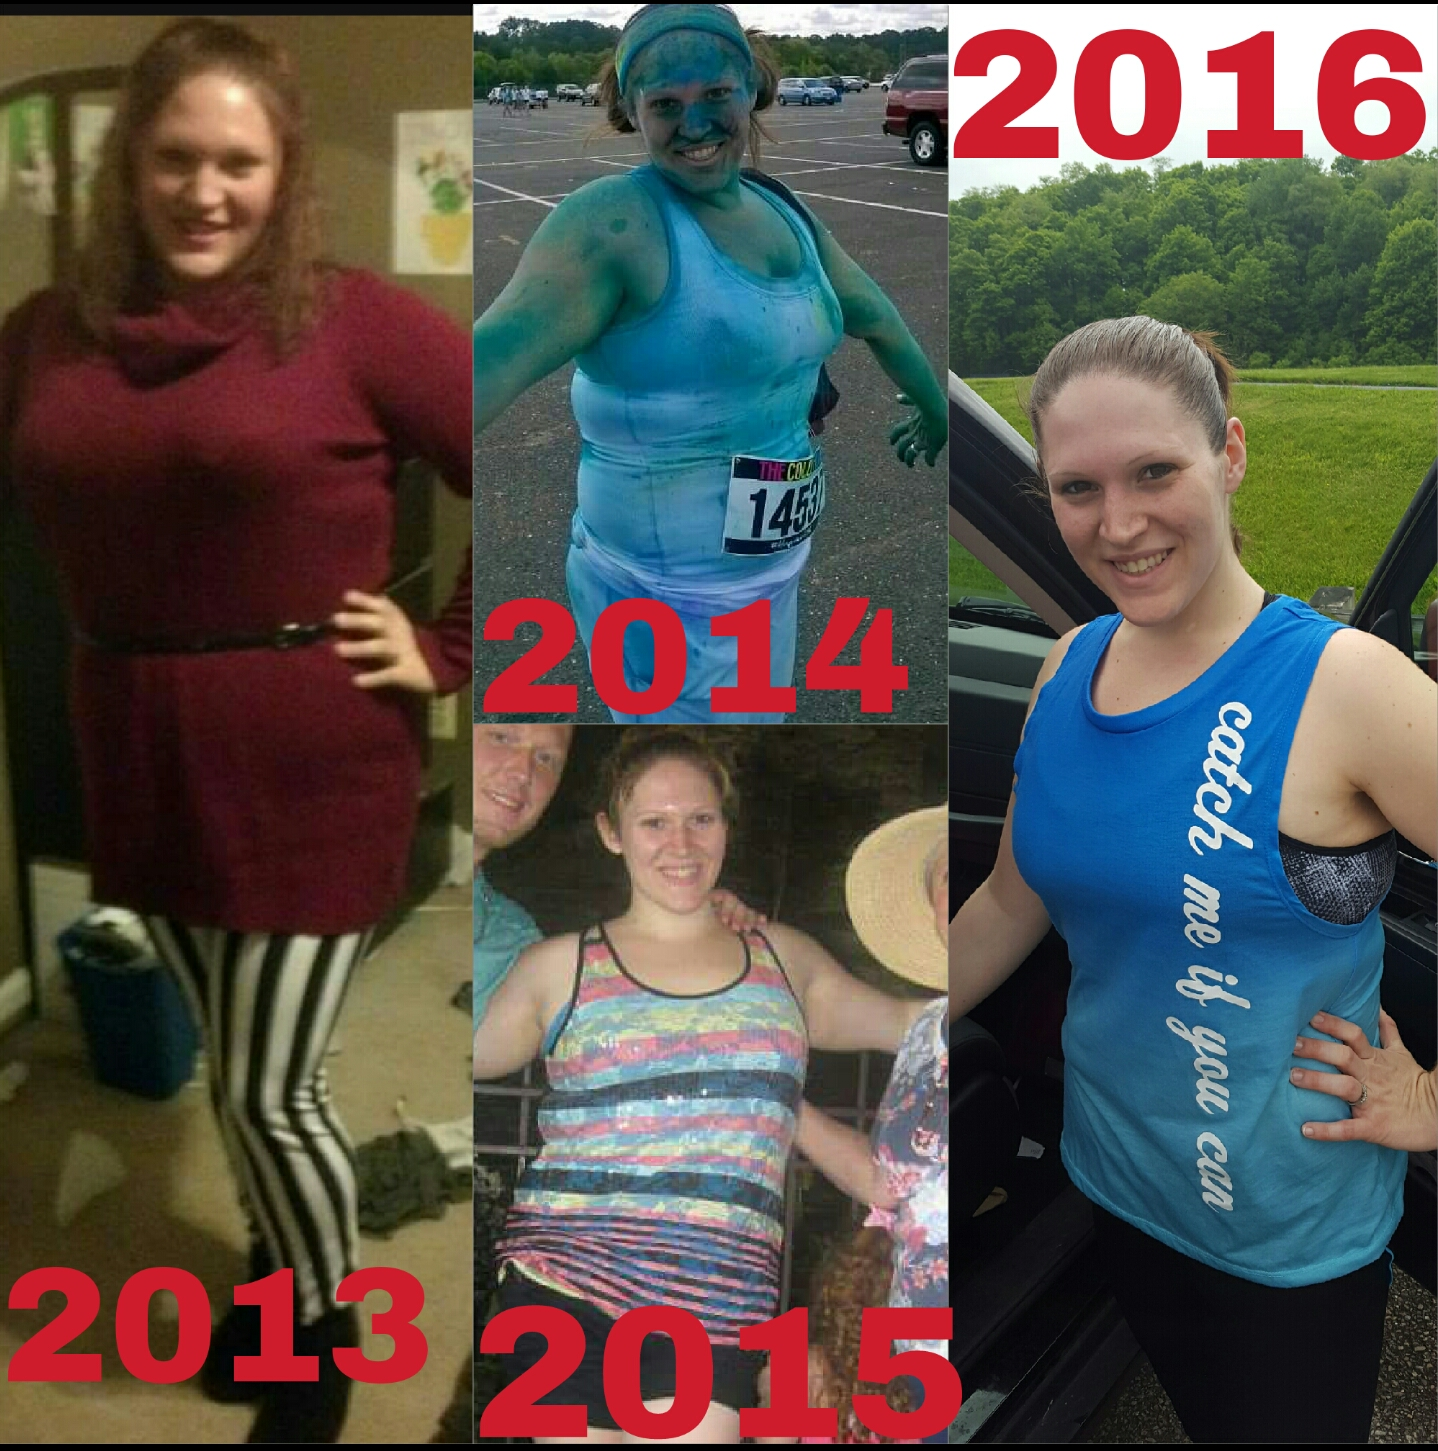 70 Pounds Lost: My journey - The Weigh We Were